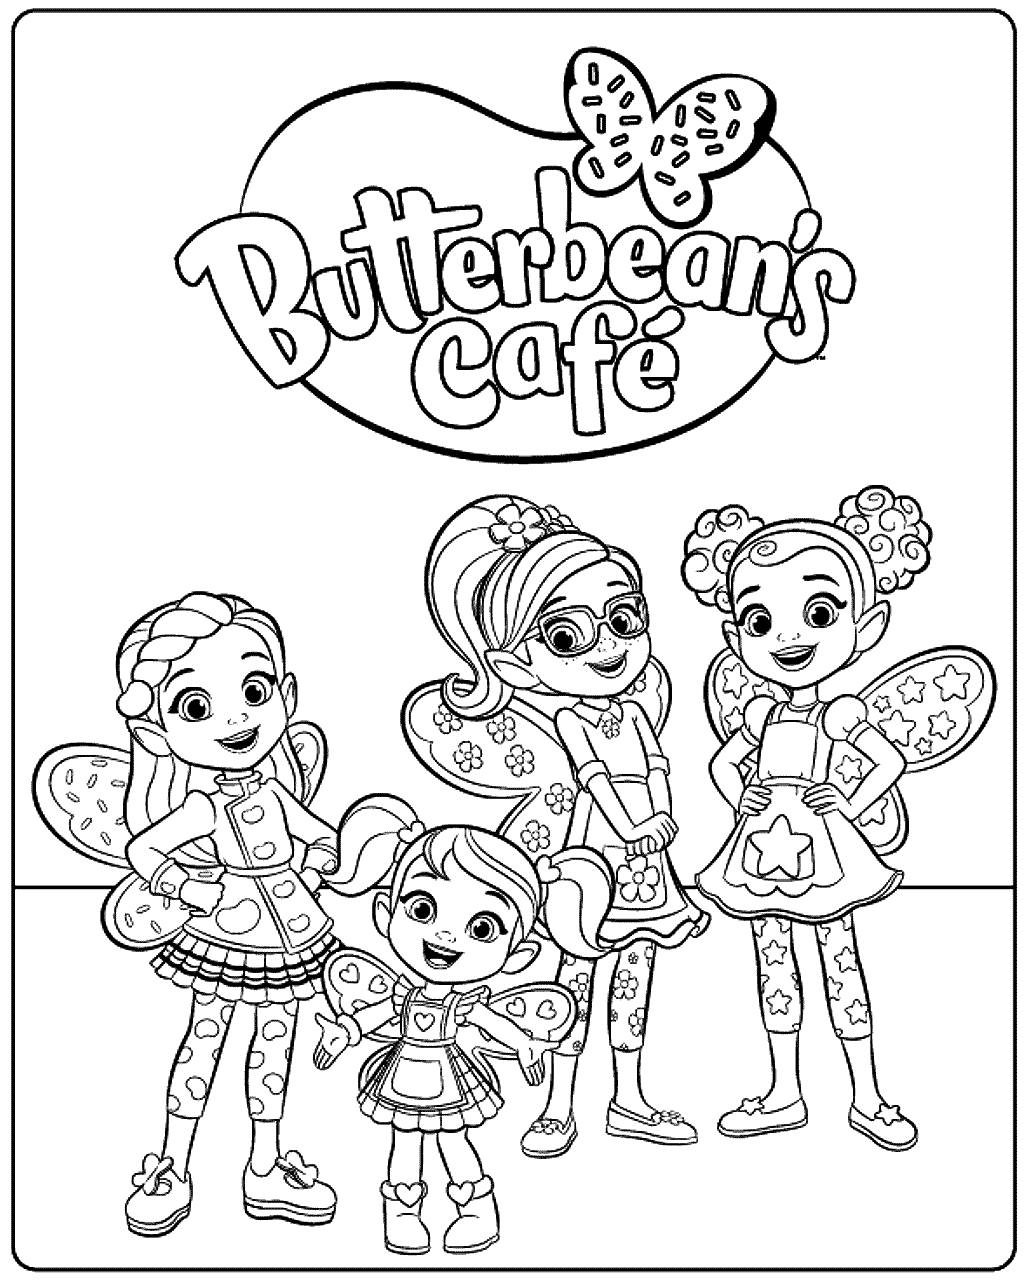 Free Butterbean S Cafe Coloring Pages Printable Coloring Junction